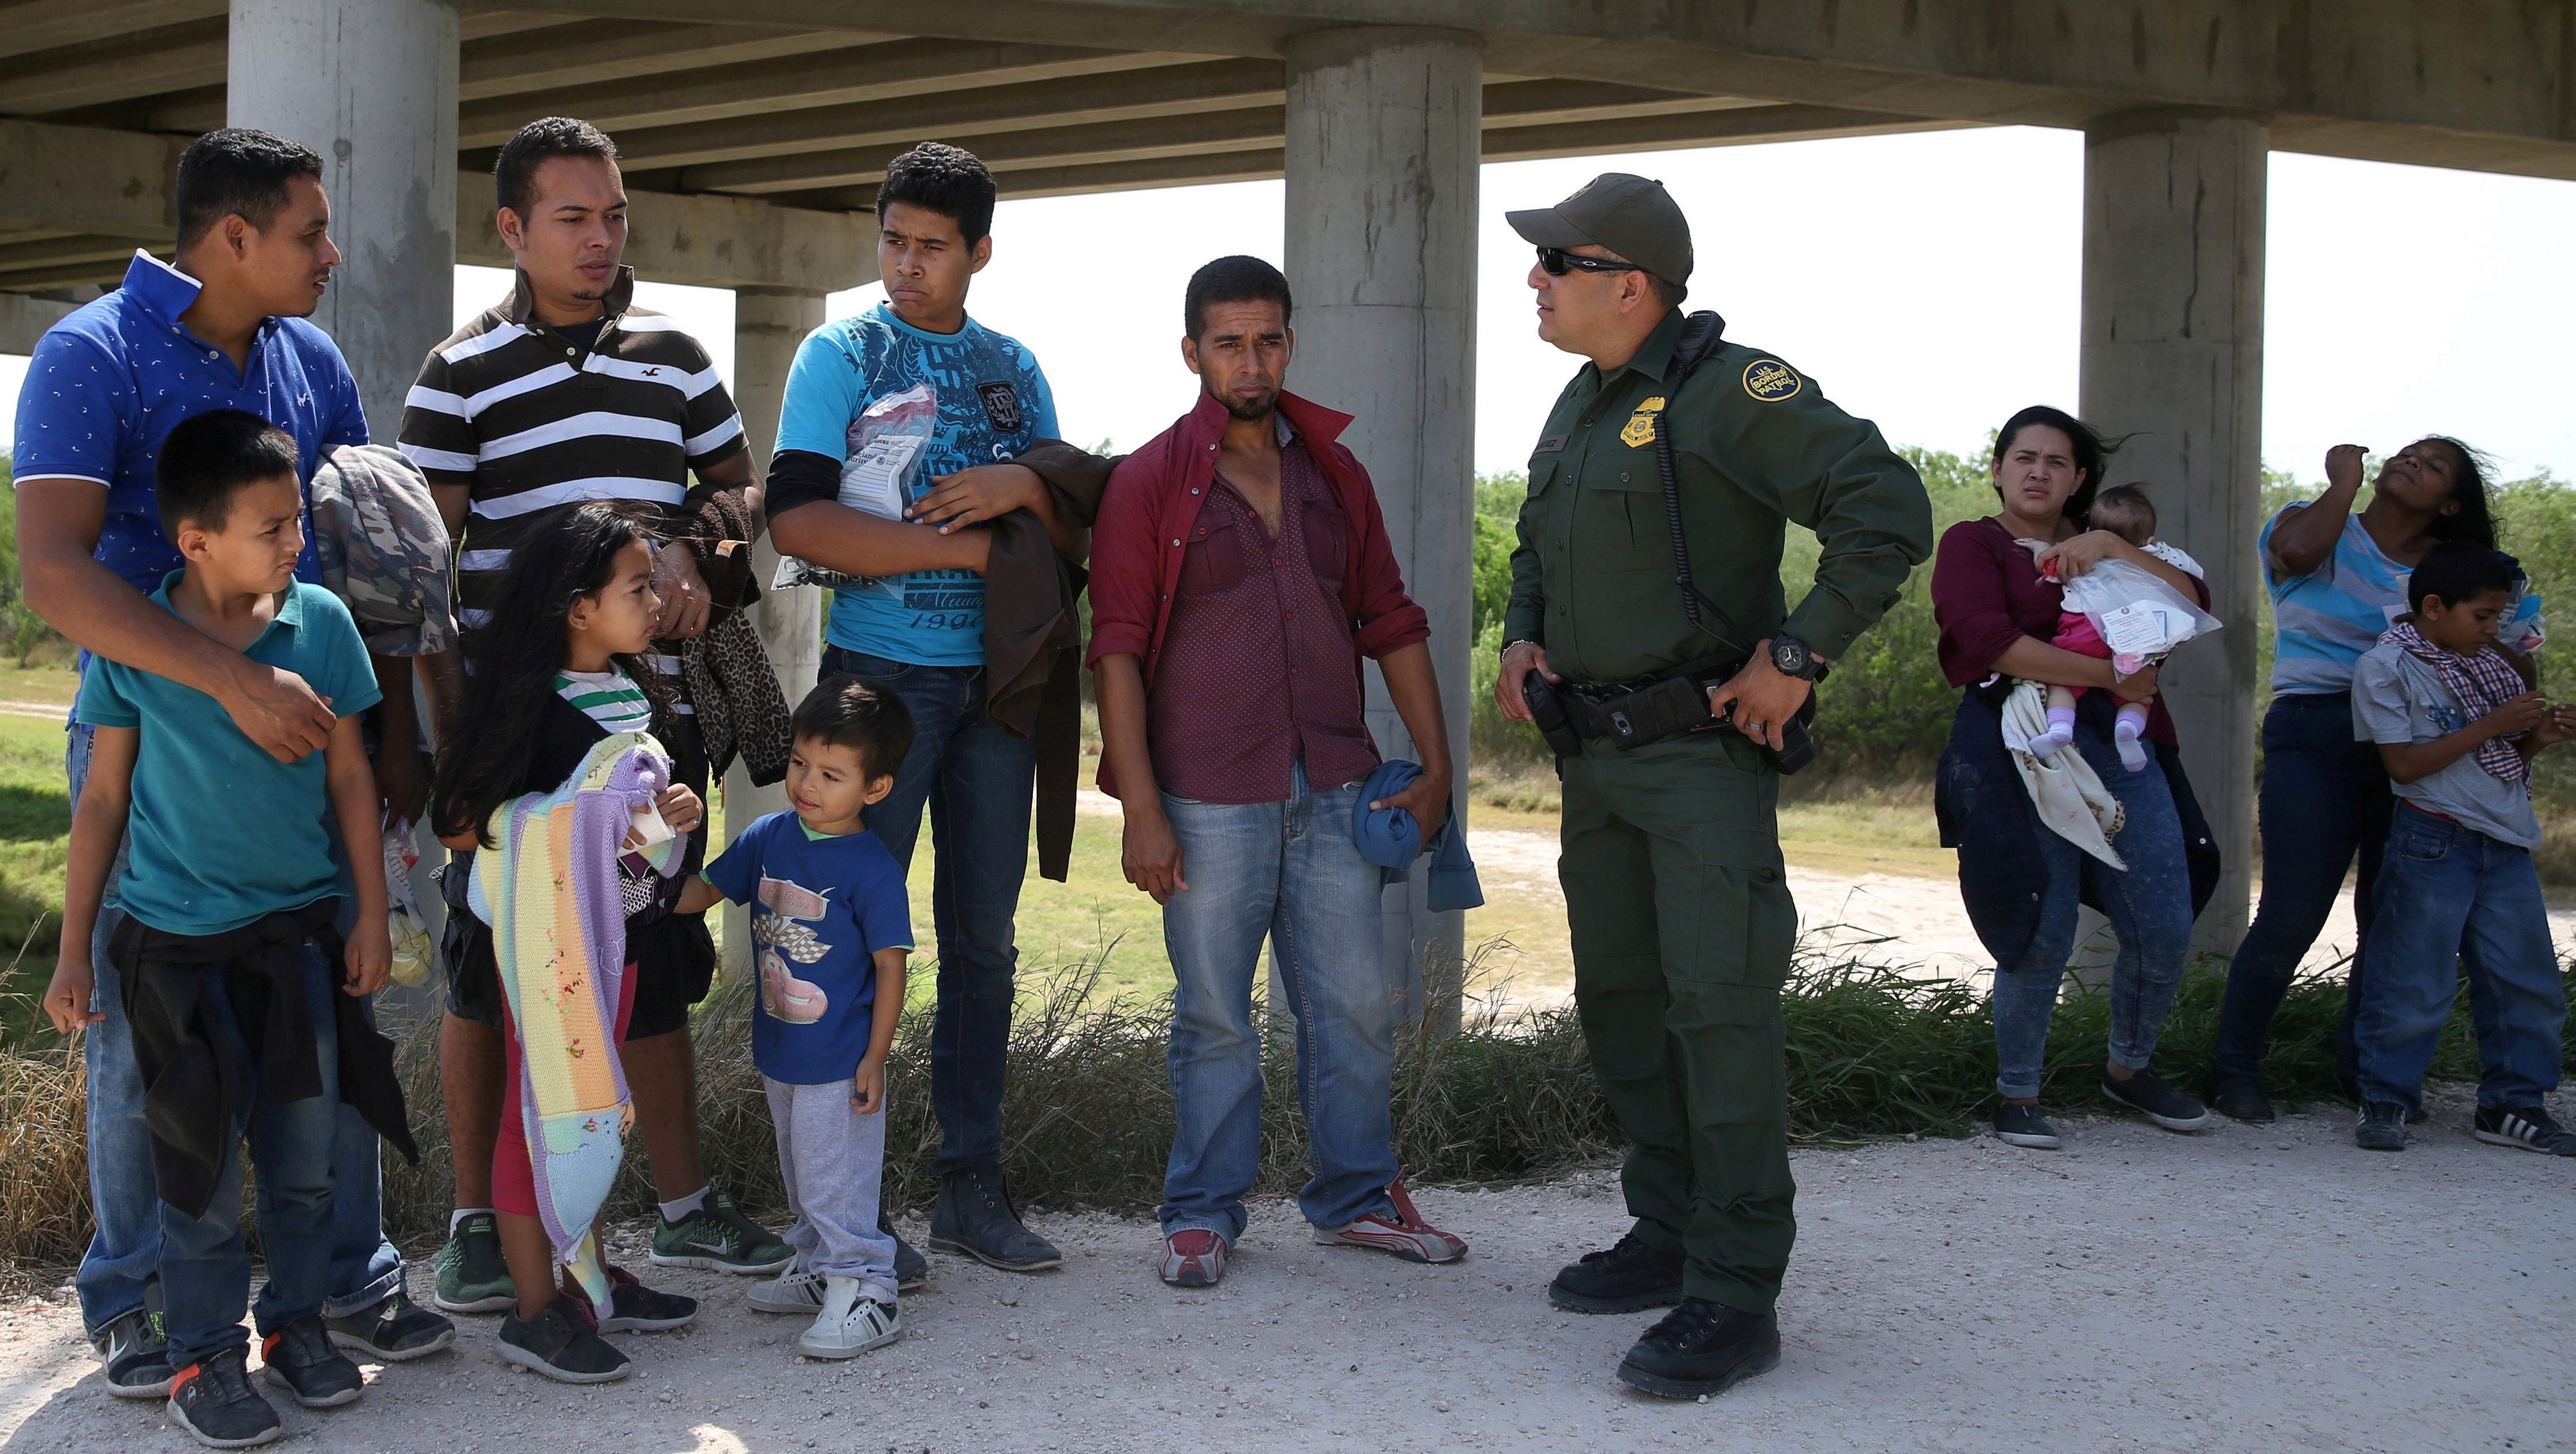 Border patrol agent with immigrants who illegally crossed the border from Mexico into the U.S.